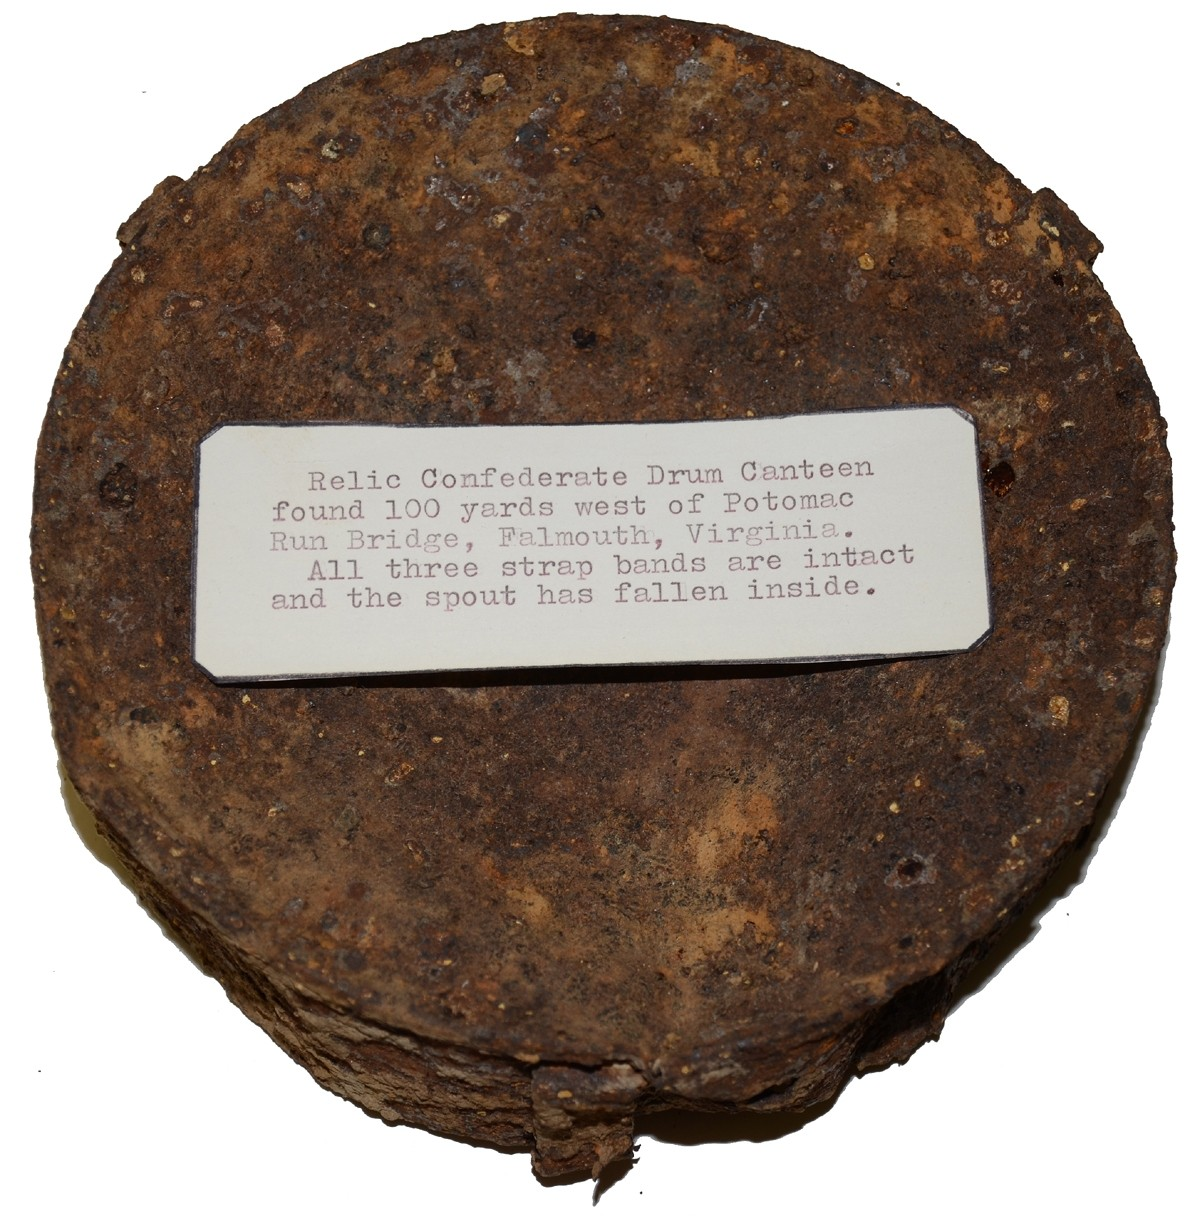 RELIC CONFEDERATE DRUM CANTEEN FROM FALMOUTH